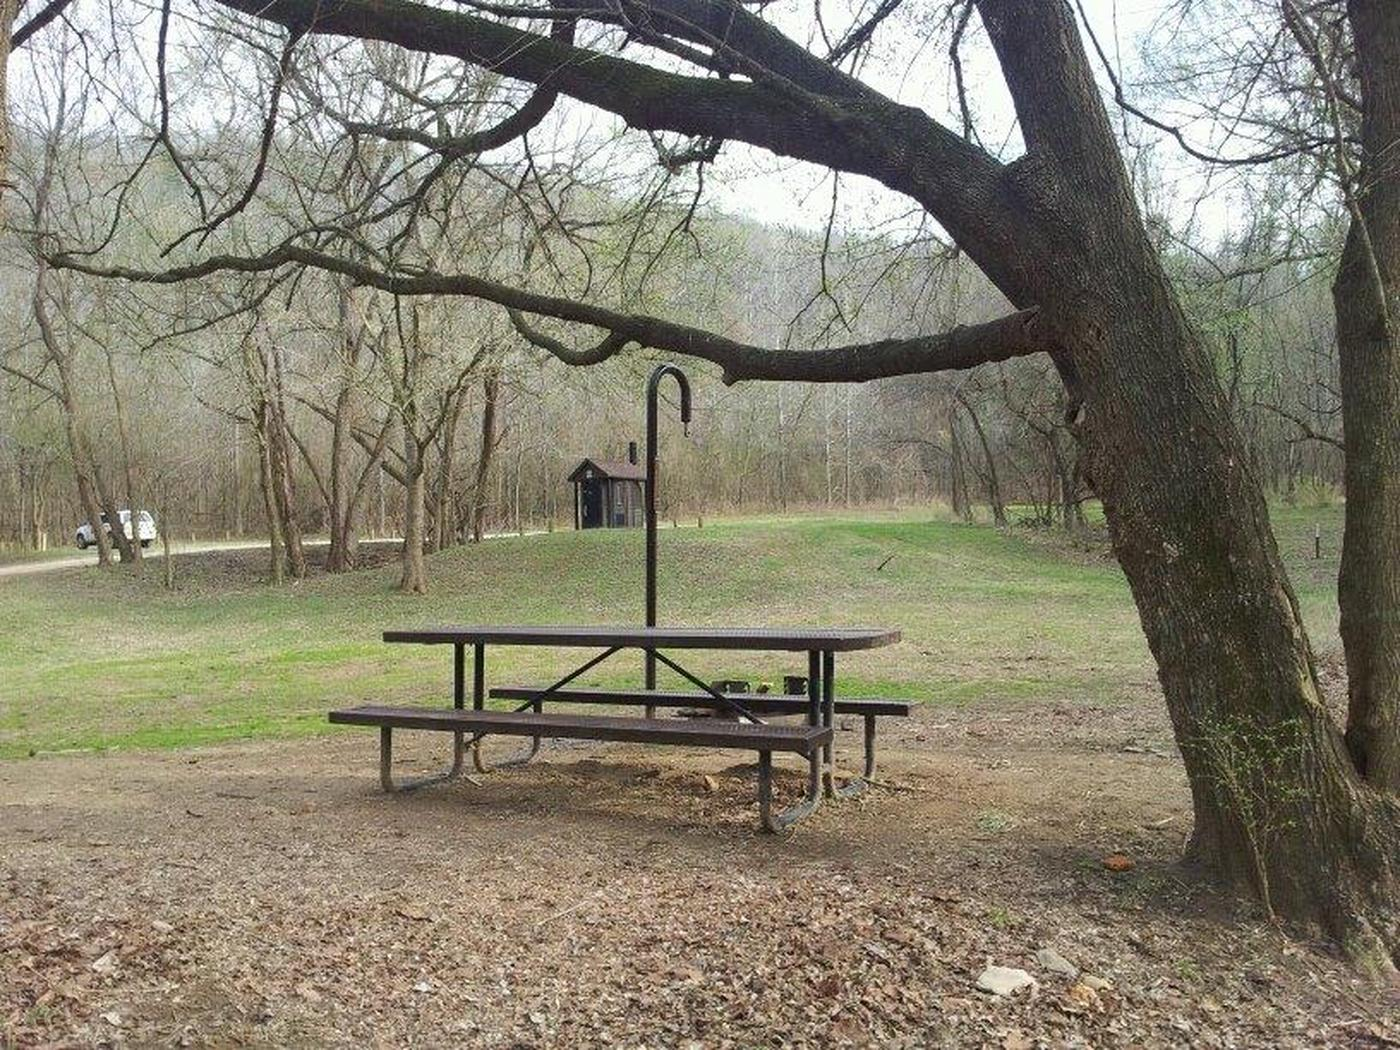 Spring Creek CampgroundSpring Creek Campground has twelve campsites each with a picnic table, lantern post and fire ring. No water is available. Campground has a vault toilet. Open year-round.